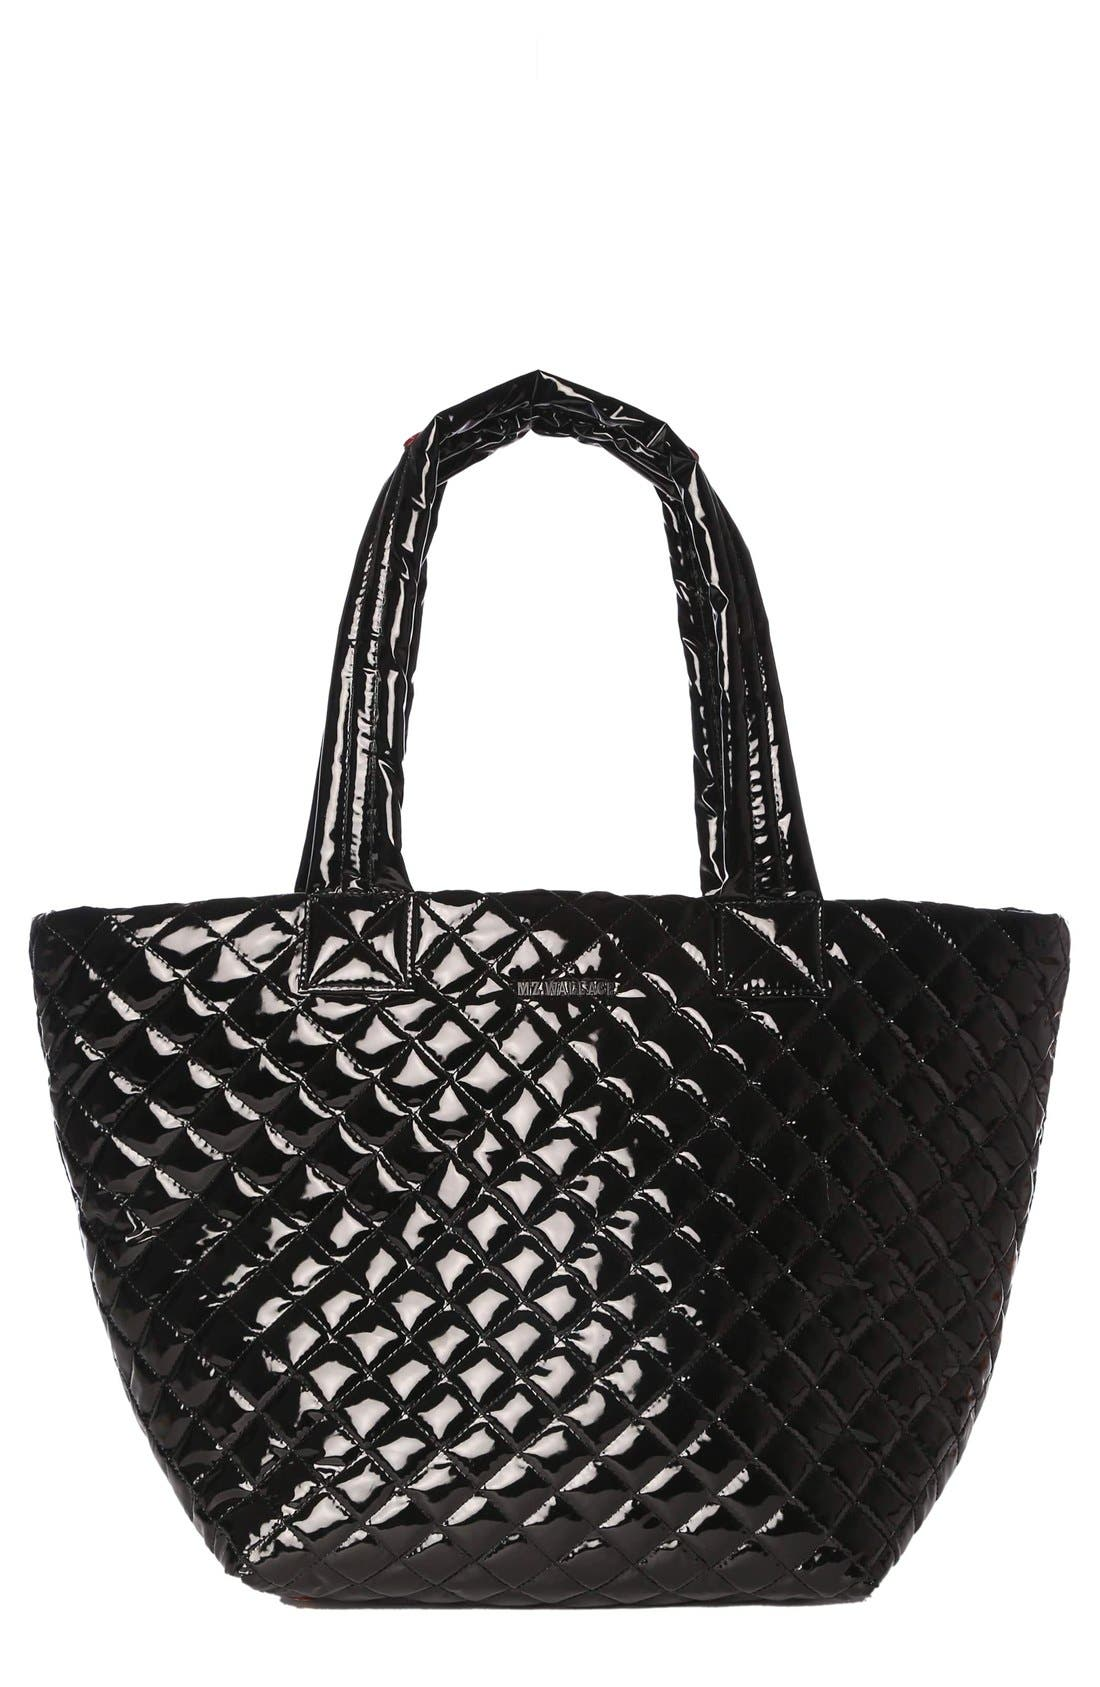 Alternate Image 1 Selected - MZ Wallace 'Medium Metro' Quilted Lacquer Tote